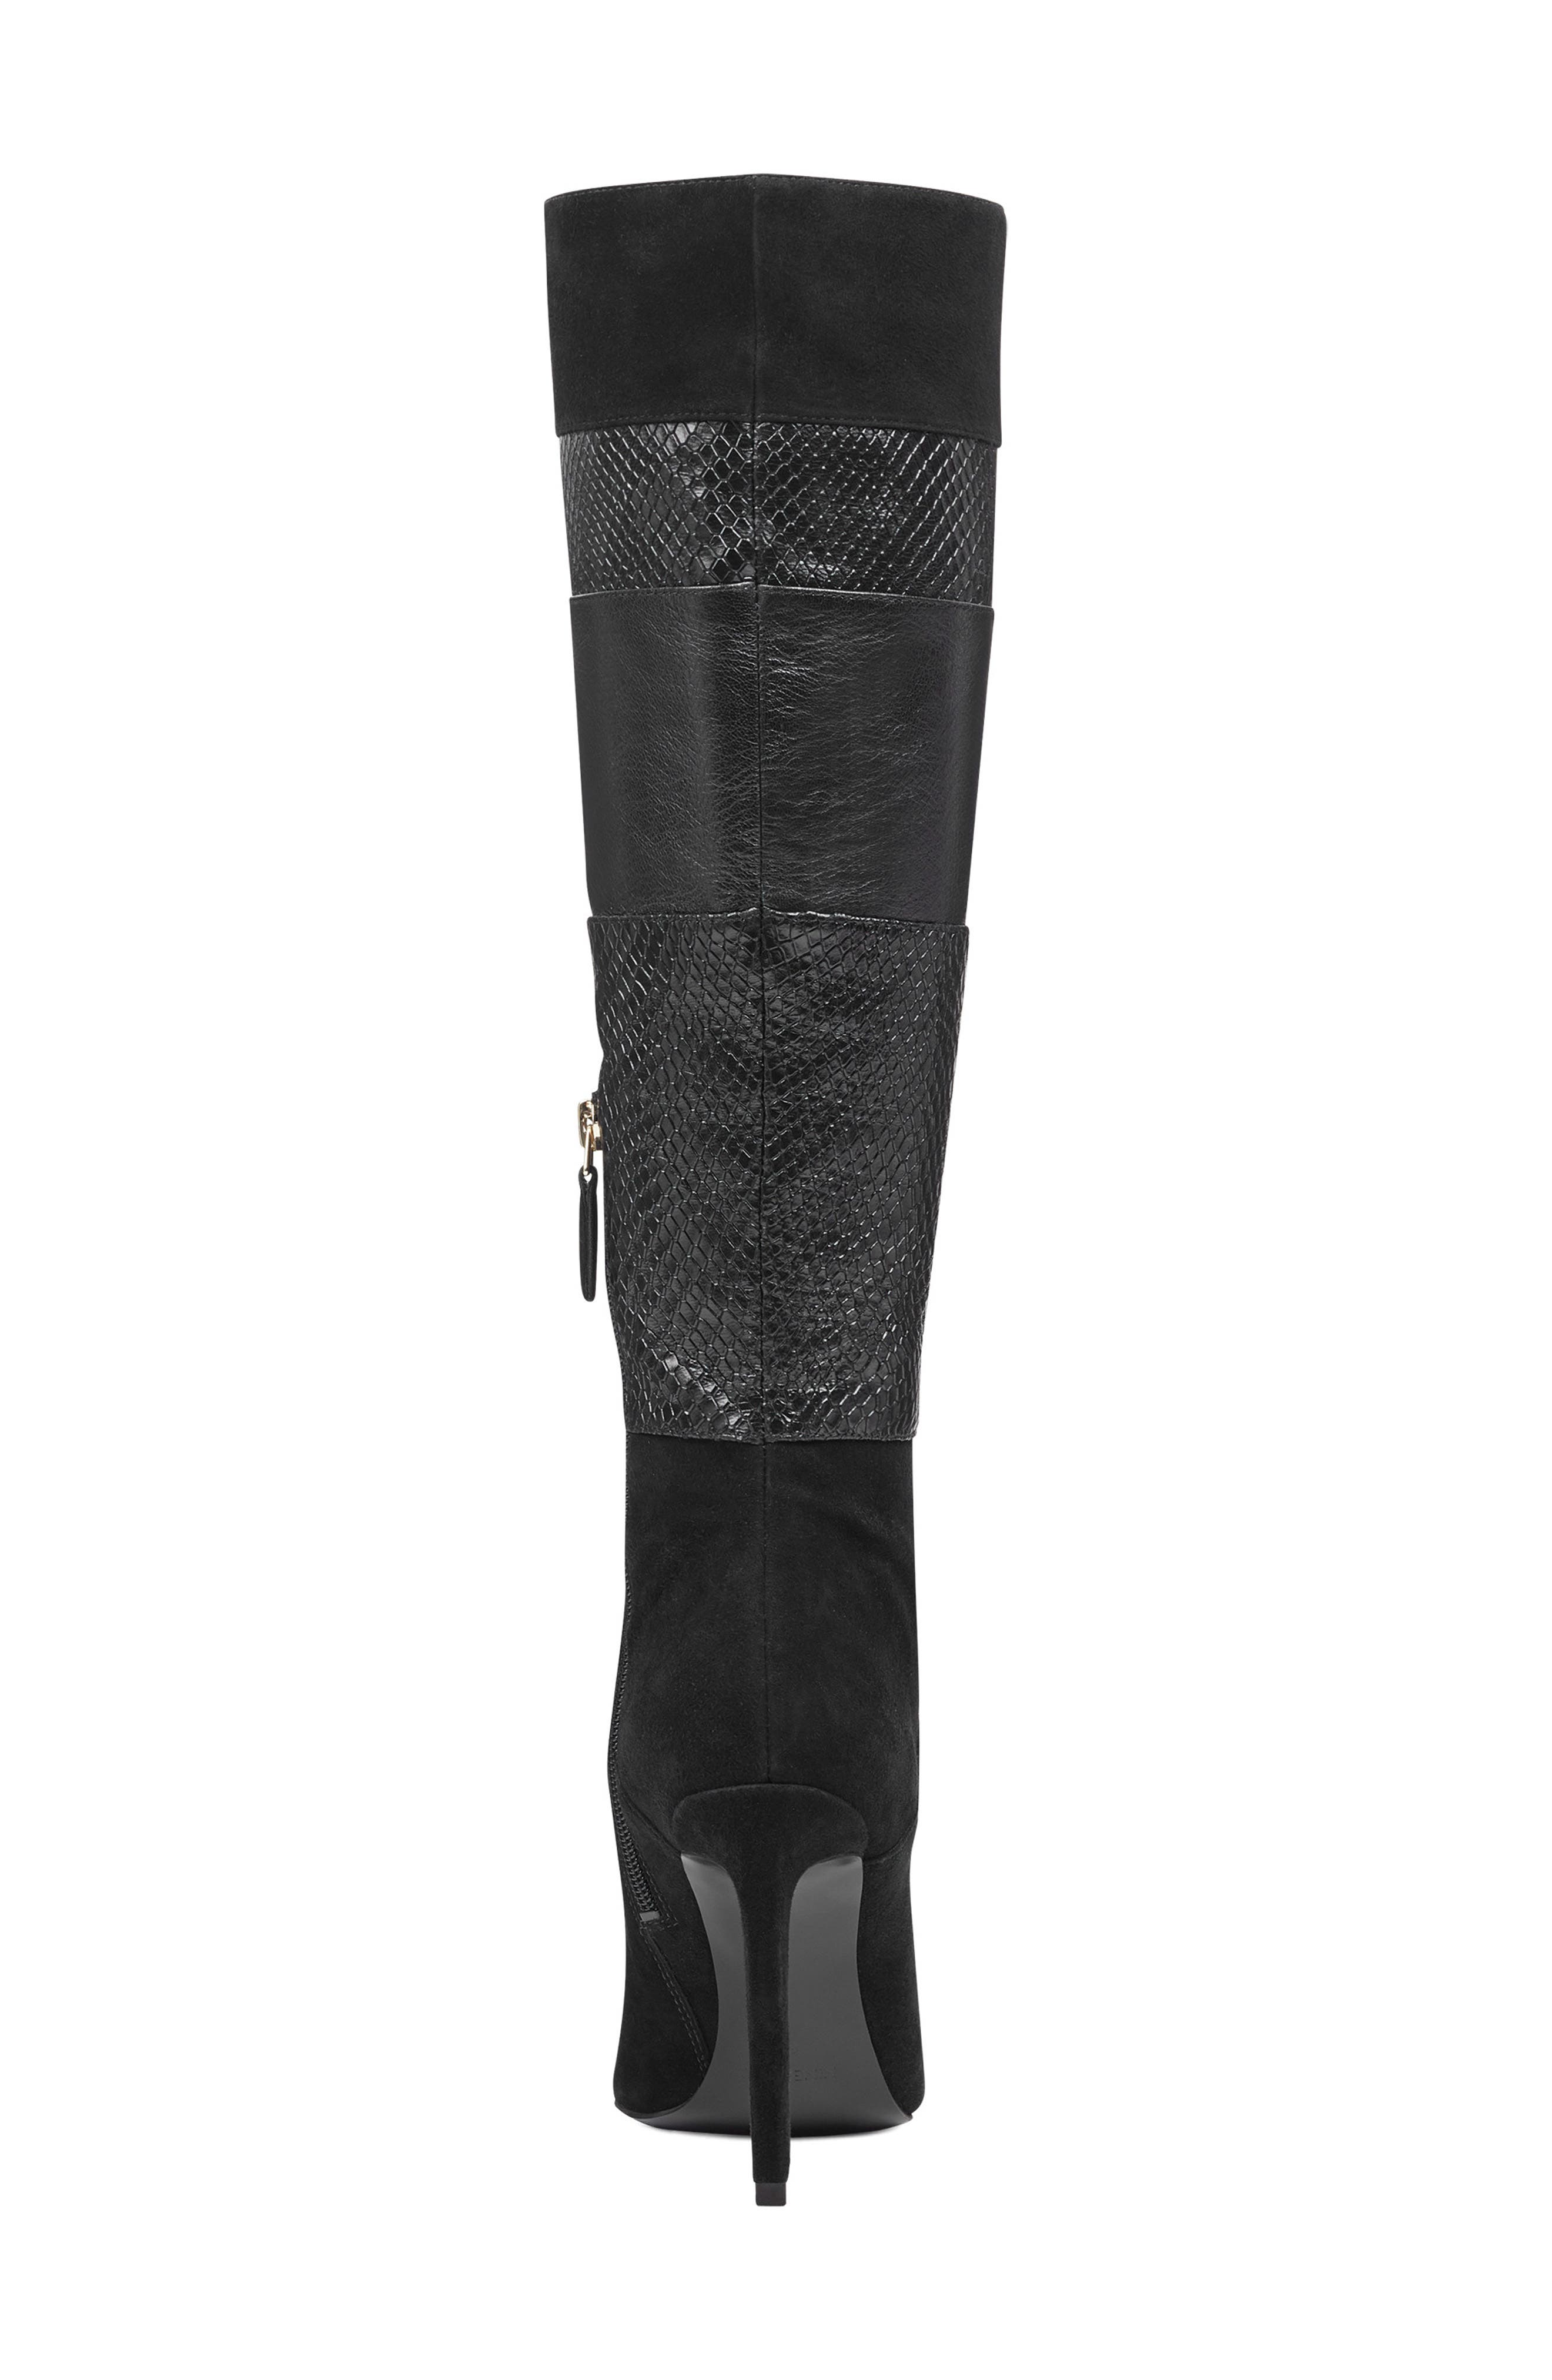 Toprank Blocked Knee High Boot,                             Alternate thumbnail 7, color,                             BLACK SUEDE